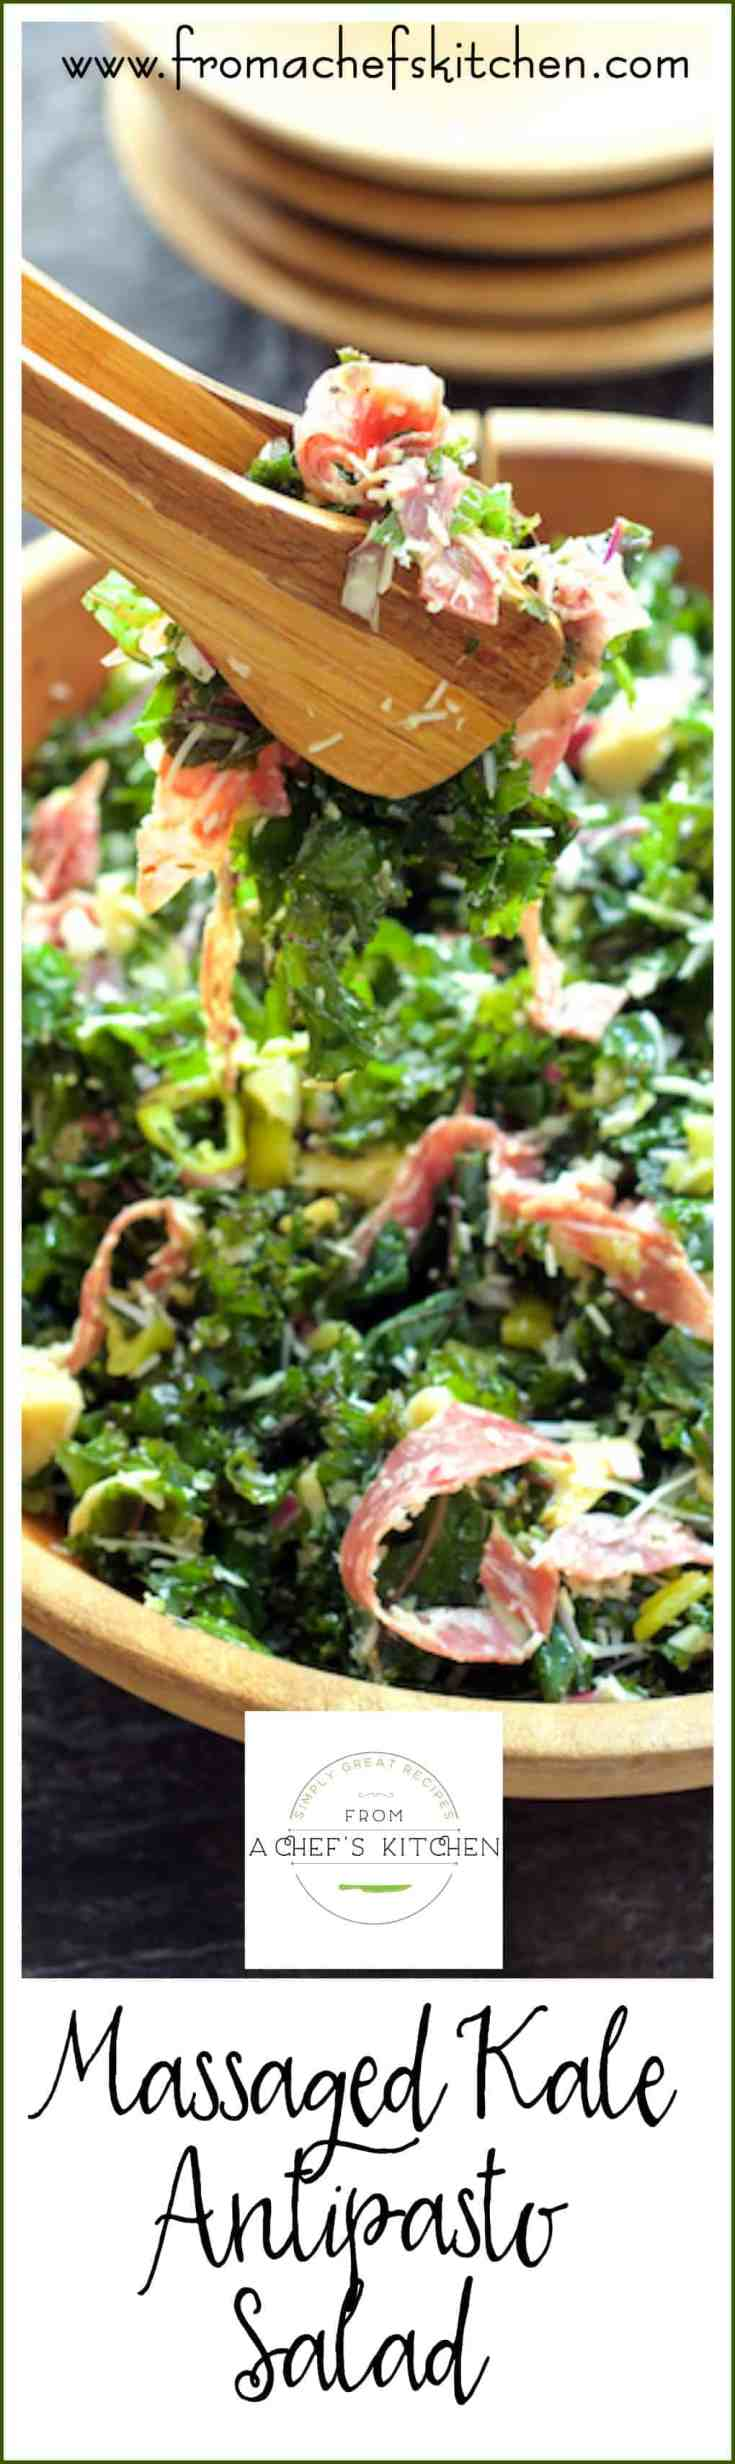 Massaged Kale Antipasto Salad is easy, wholesome and you may already have everything on hand to make this delicious salad!  If you've been wanting to try kale, this salad will get you hooked! #kale #kalesalad #antipastosalad #kaleaantipastosalad #Italian #Italianfood